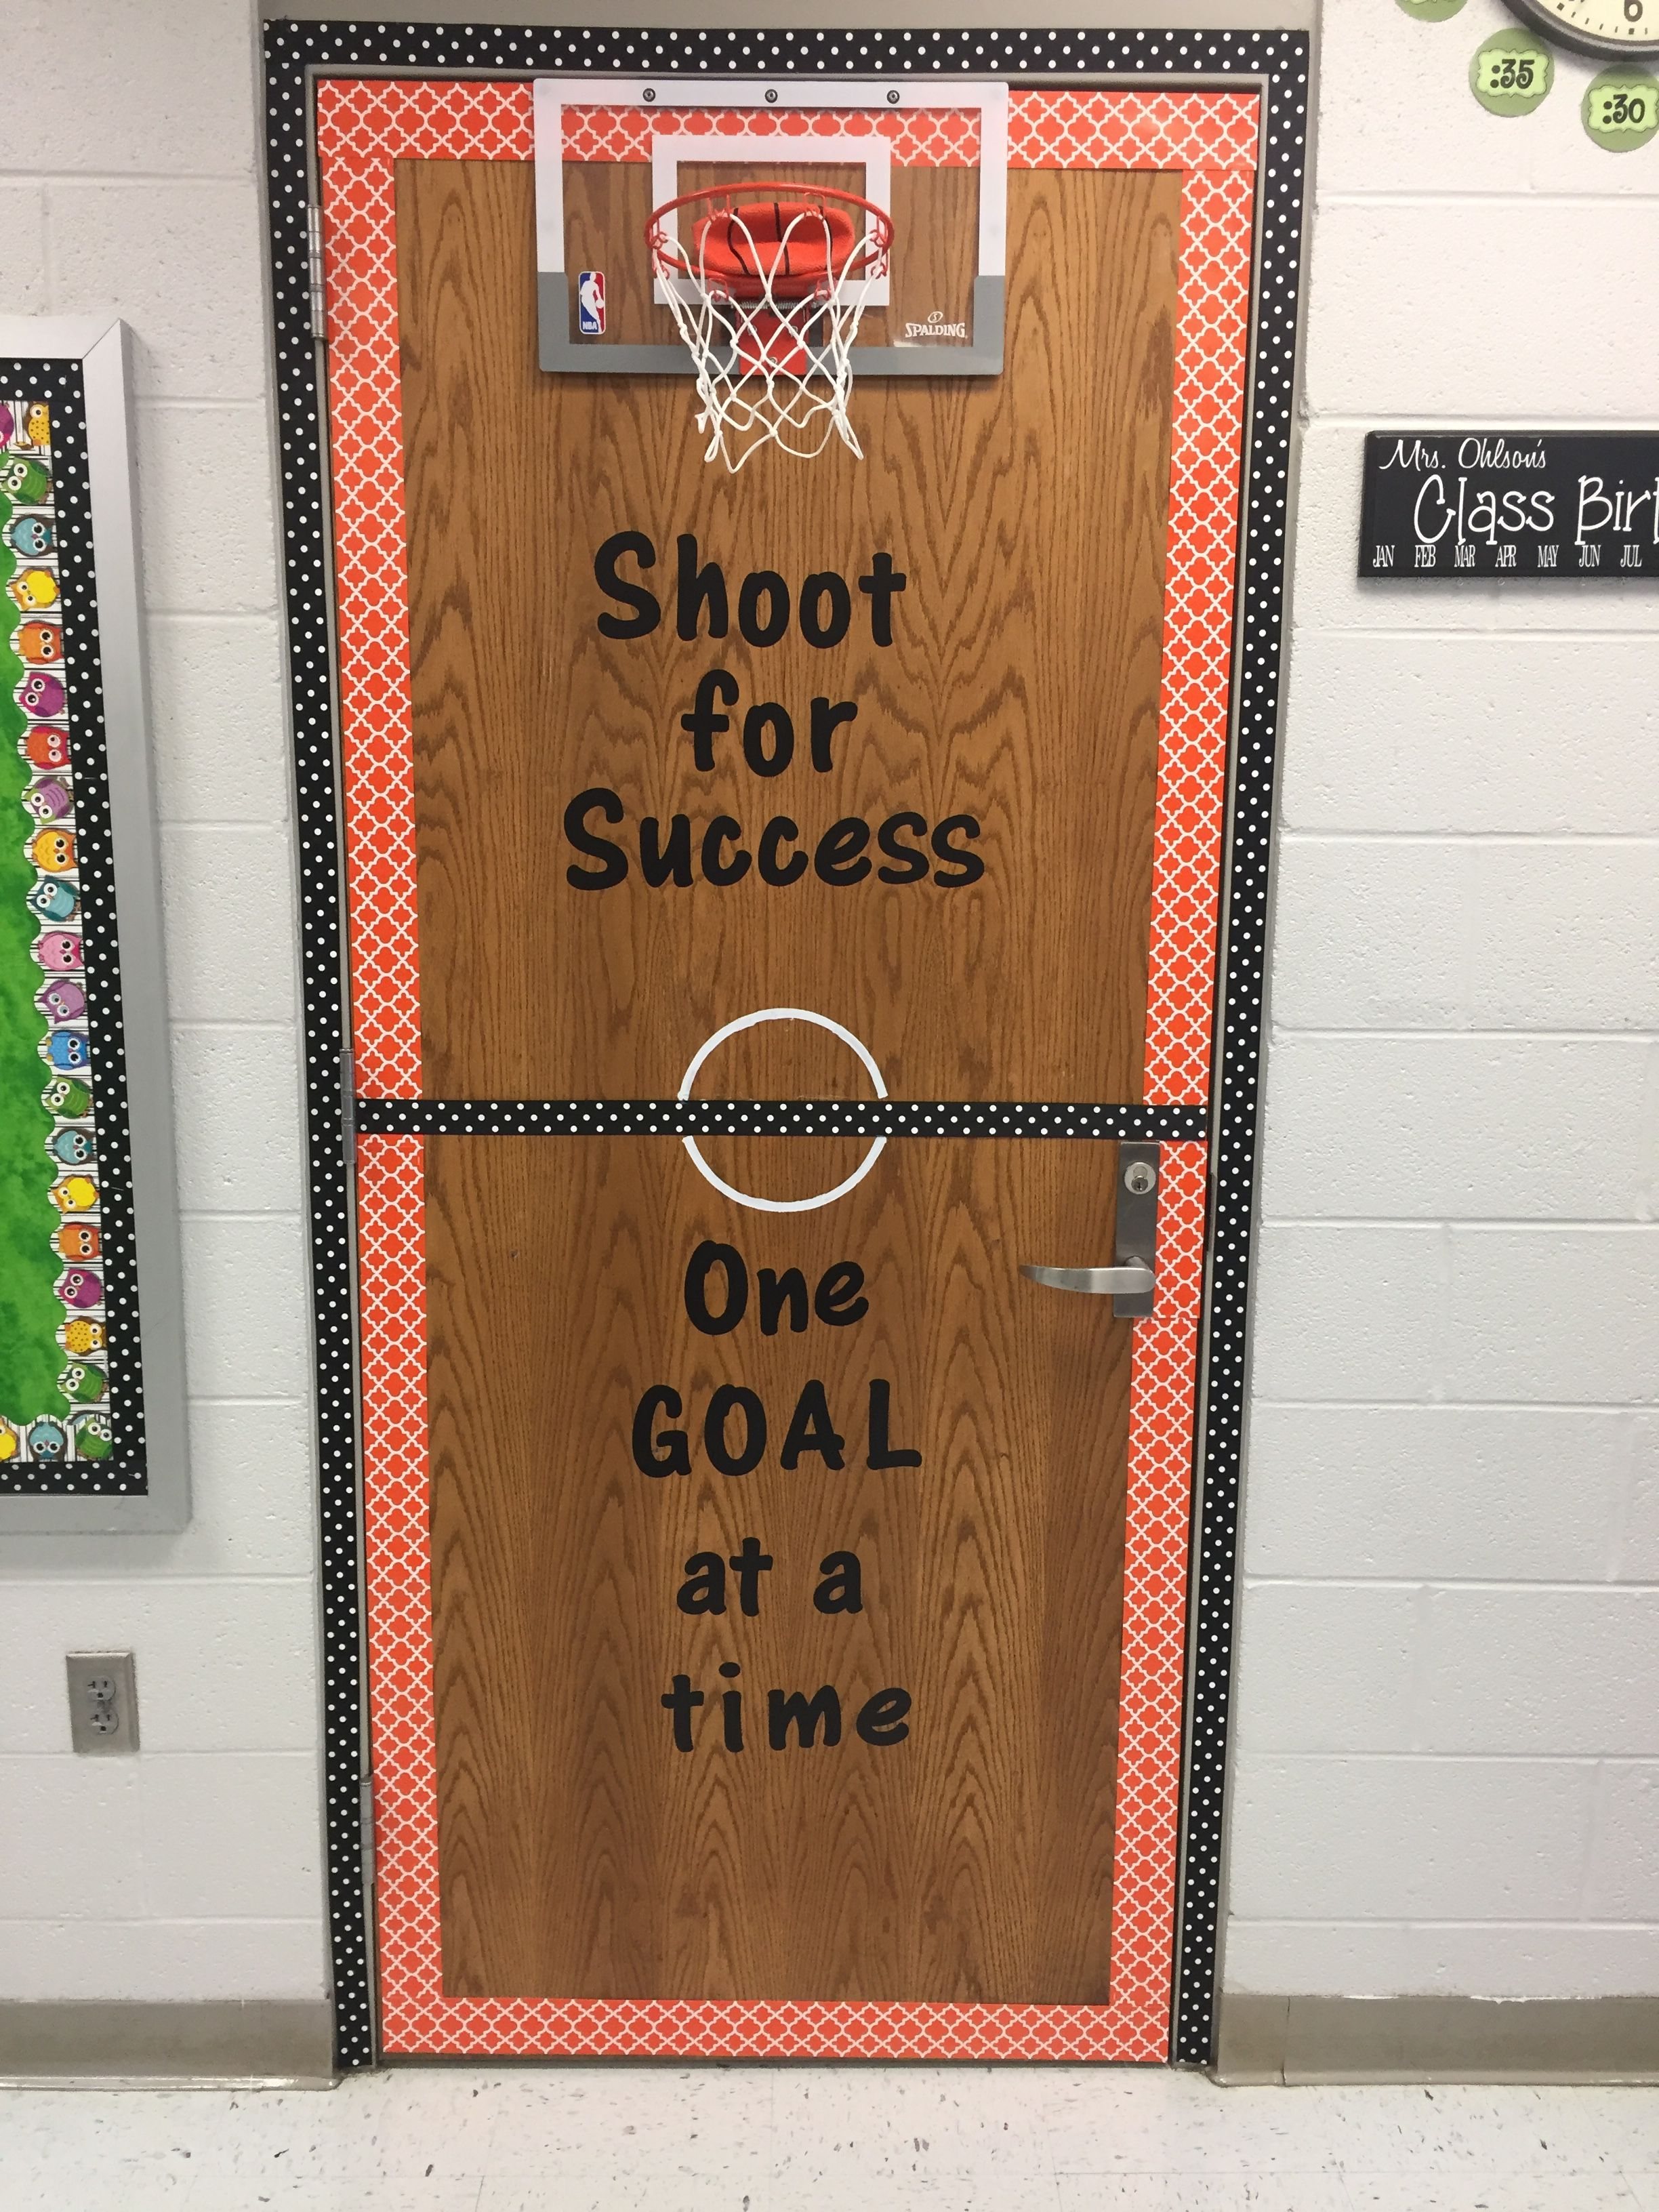 Superieur I Decorated My Closet Door In My Classroom With A Mini Basketball Goal. I  Will Use This For Math And Review Games!